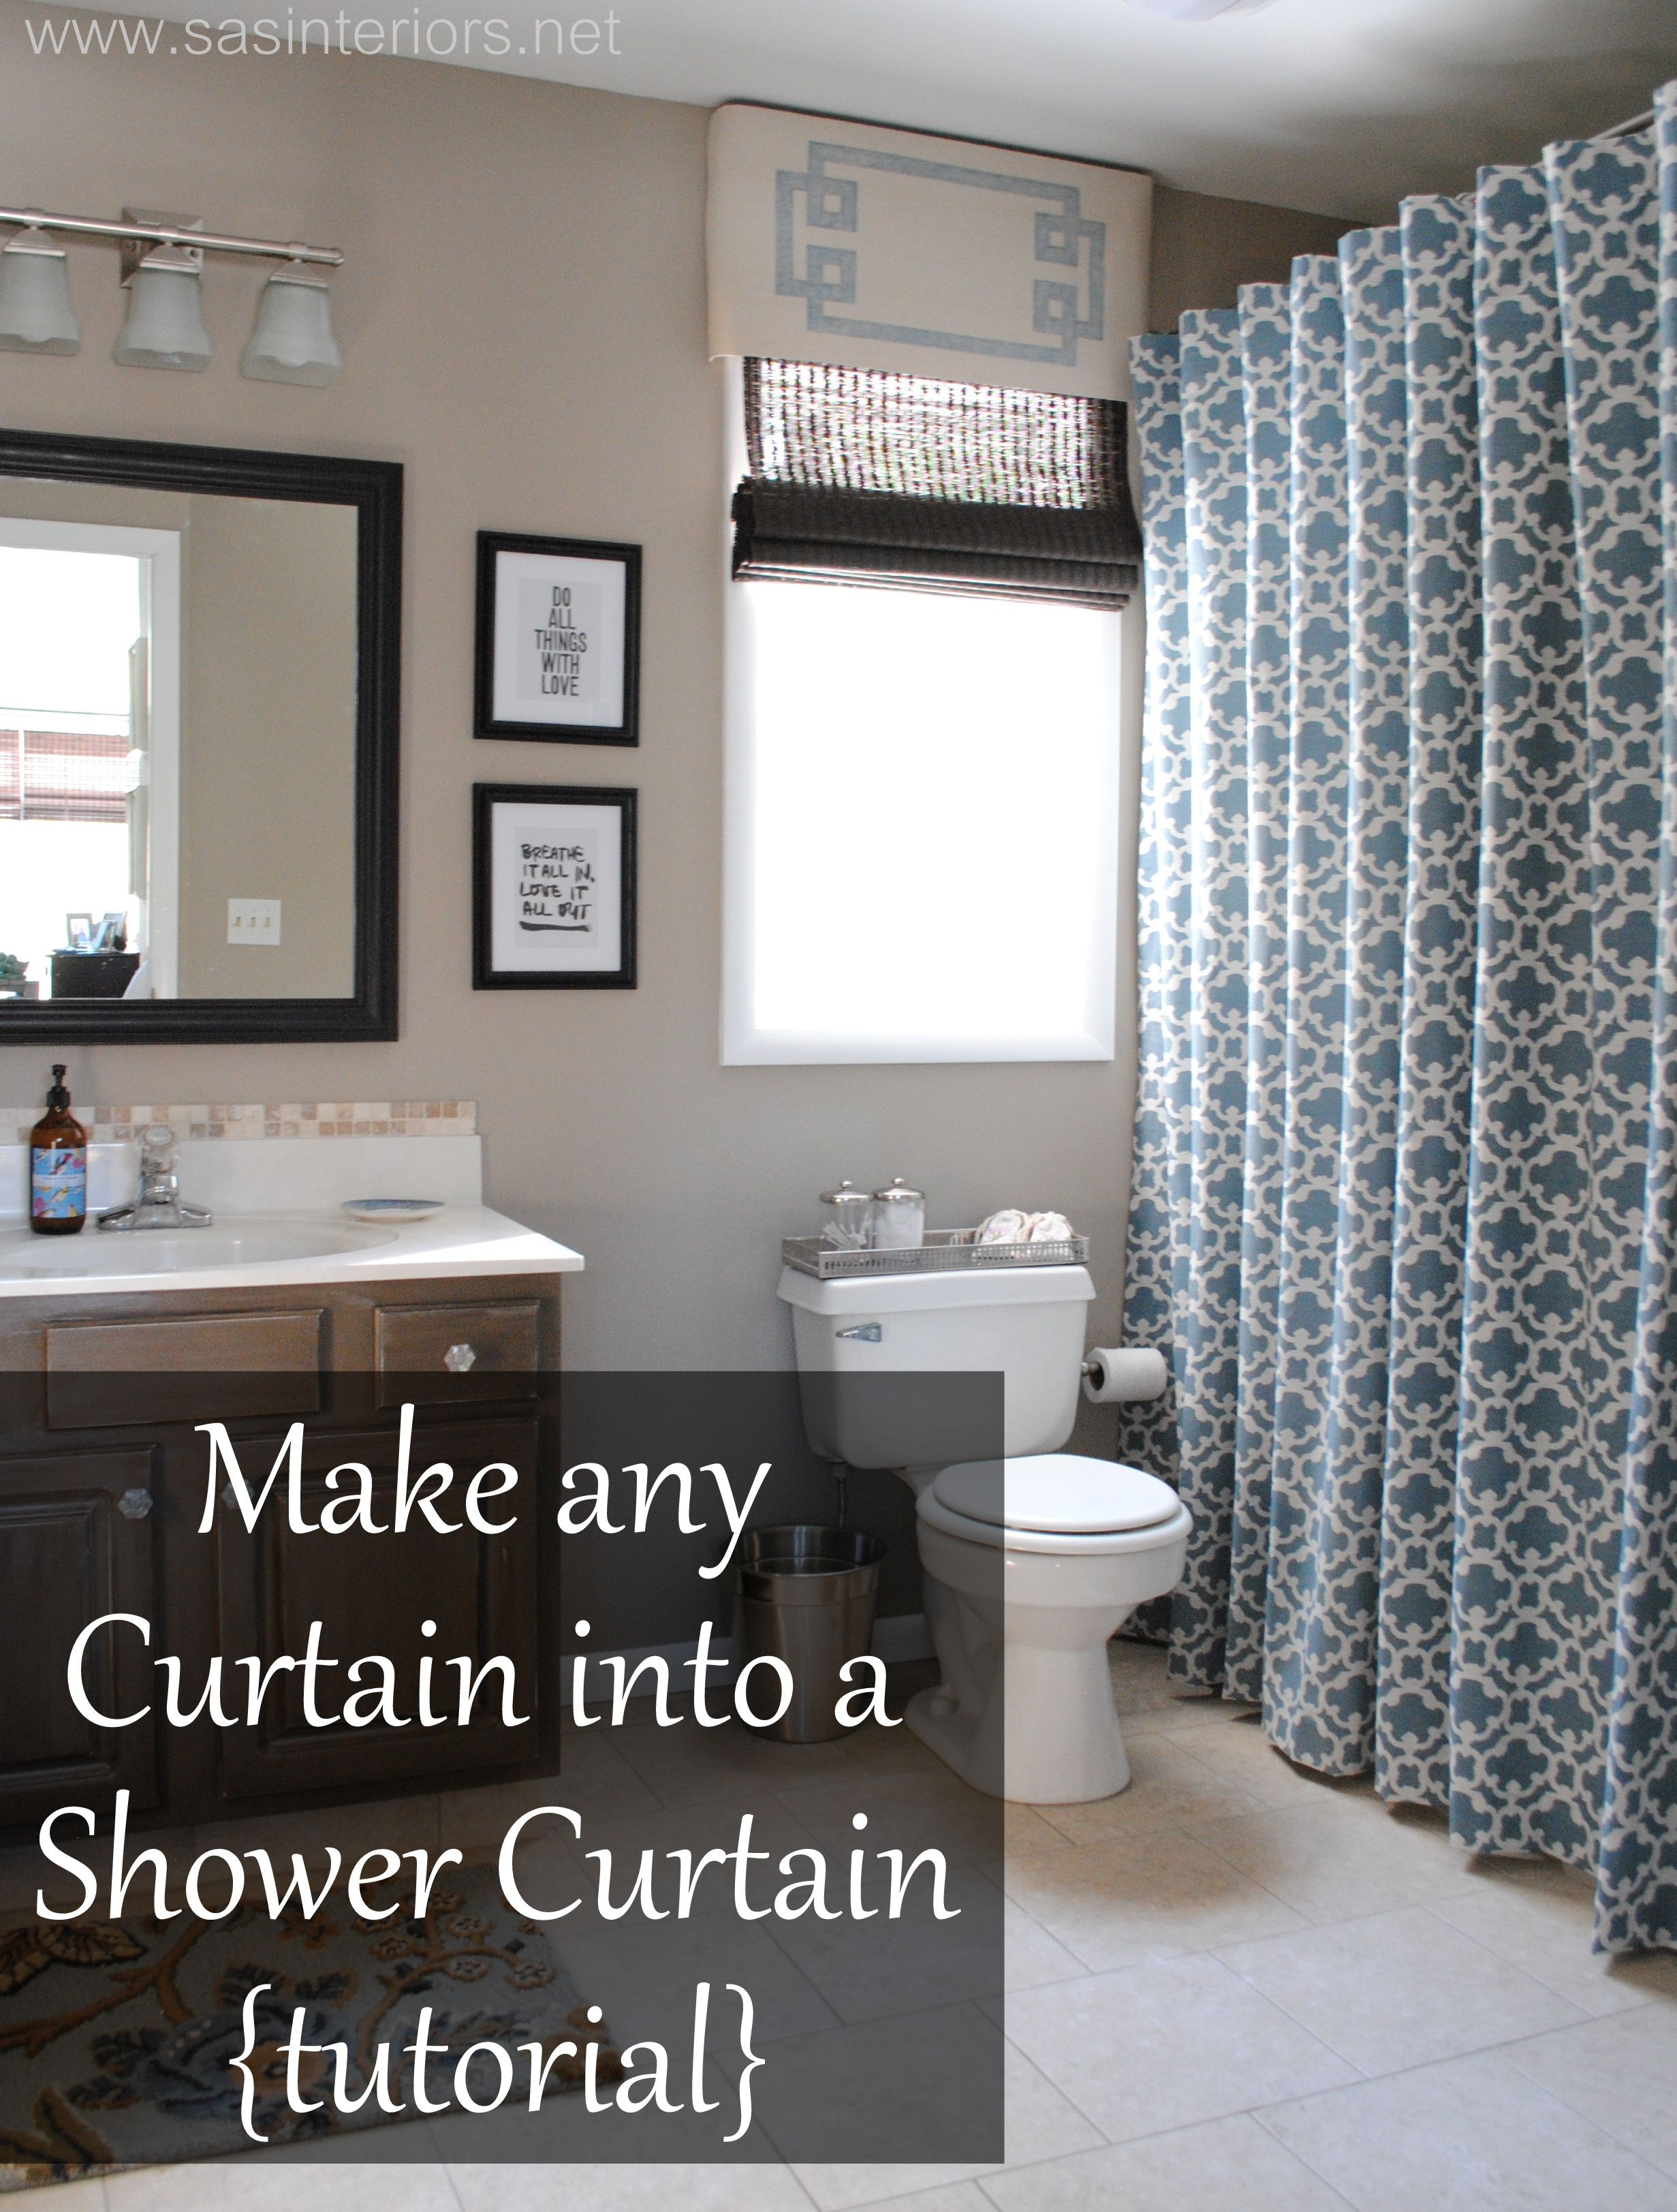 Merveilleux You Just Need Some Drapes That Match Your Bathroom, A Shower Curtain Liner  Thatu0027s ...